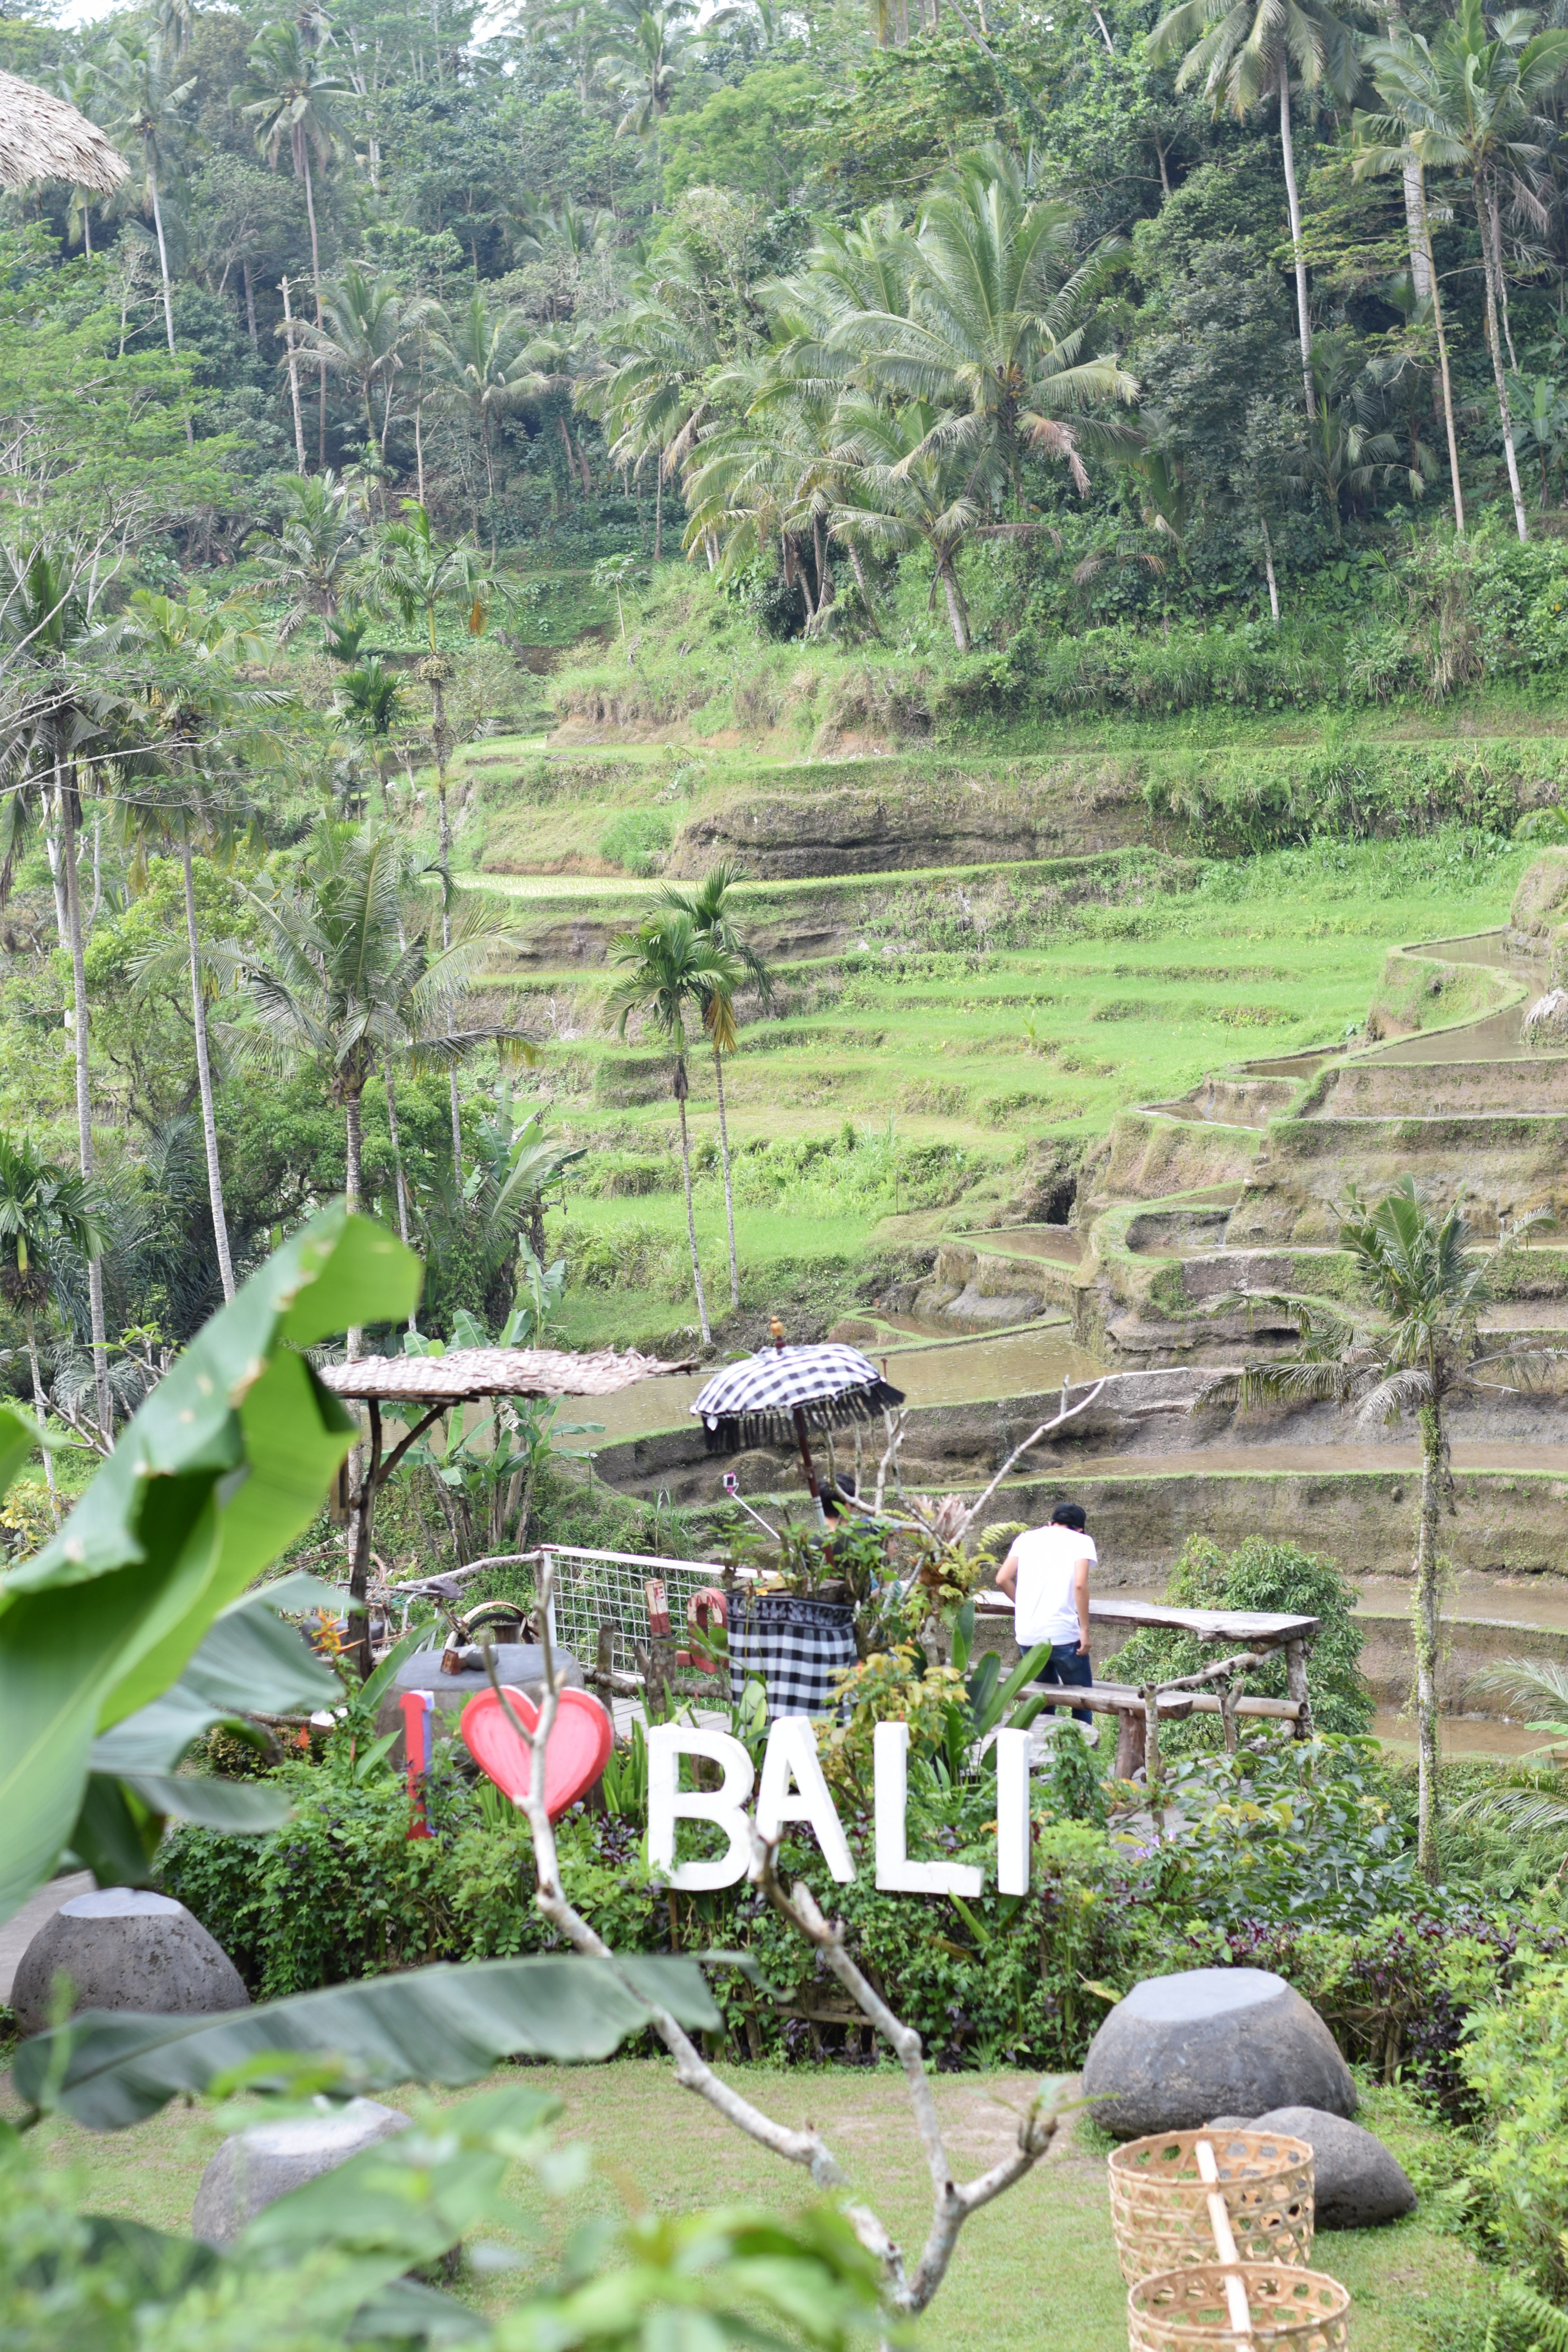 Tegallalang Rice Terrace - Ubud, Bali, Indonesia - Our Bali Trip - Communikait